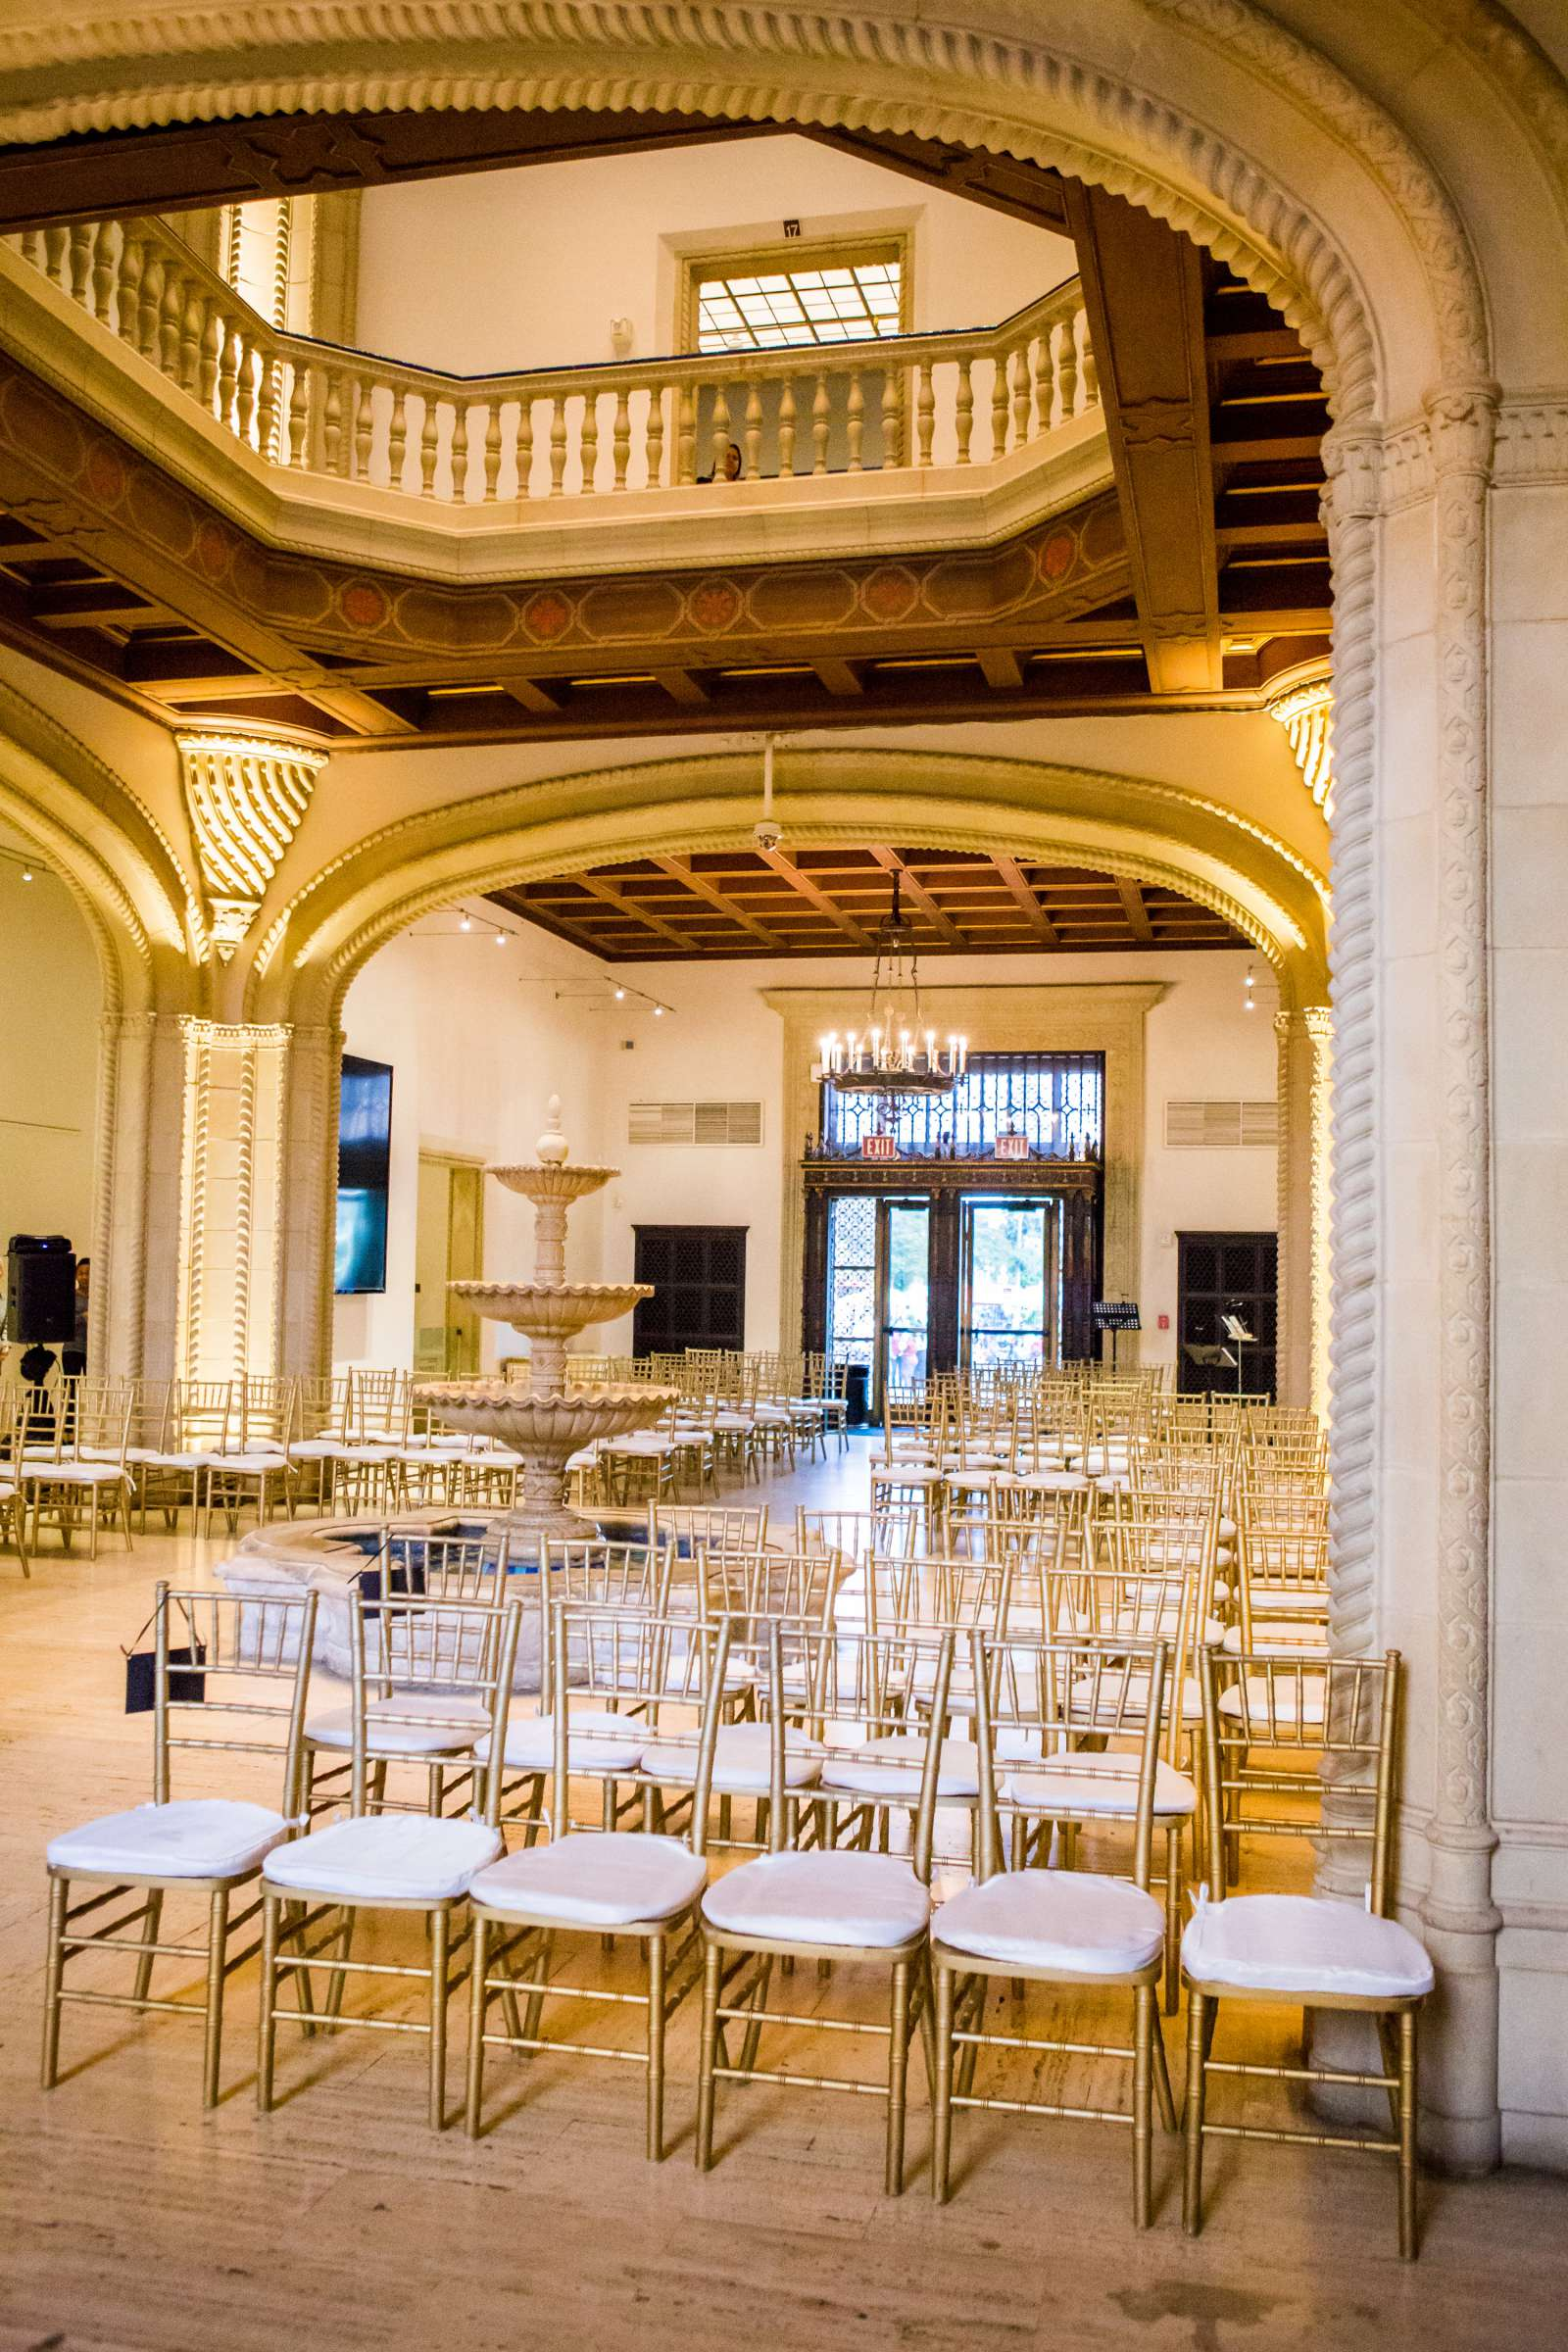 San Diego Museum of Art Wedding coordinated by First Comes Love Weddings & Events, Ruthie and Larry Wedding Photo #236866 by True Photography